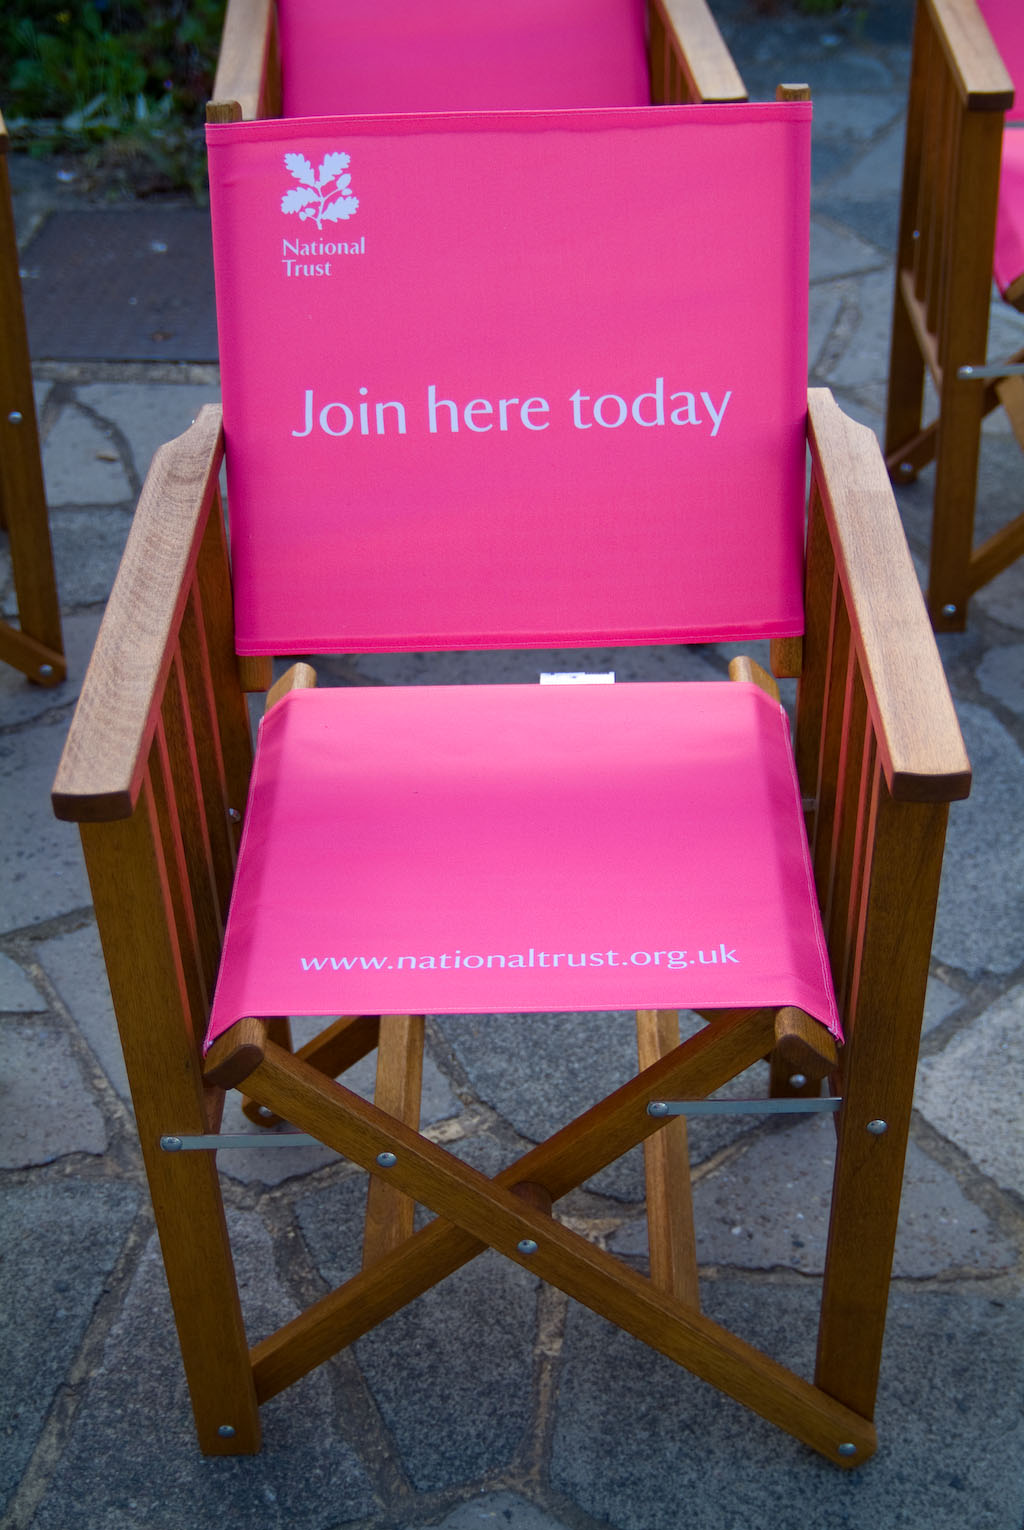 Delicieux High Quality, Portable, Canvas Covered Tennis Chair Featuring Your Own  Companies Logo Or Advert Branded Onto The Fabric. Made From Sustainable  Hard Wood, ...